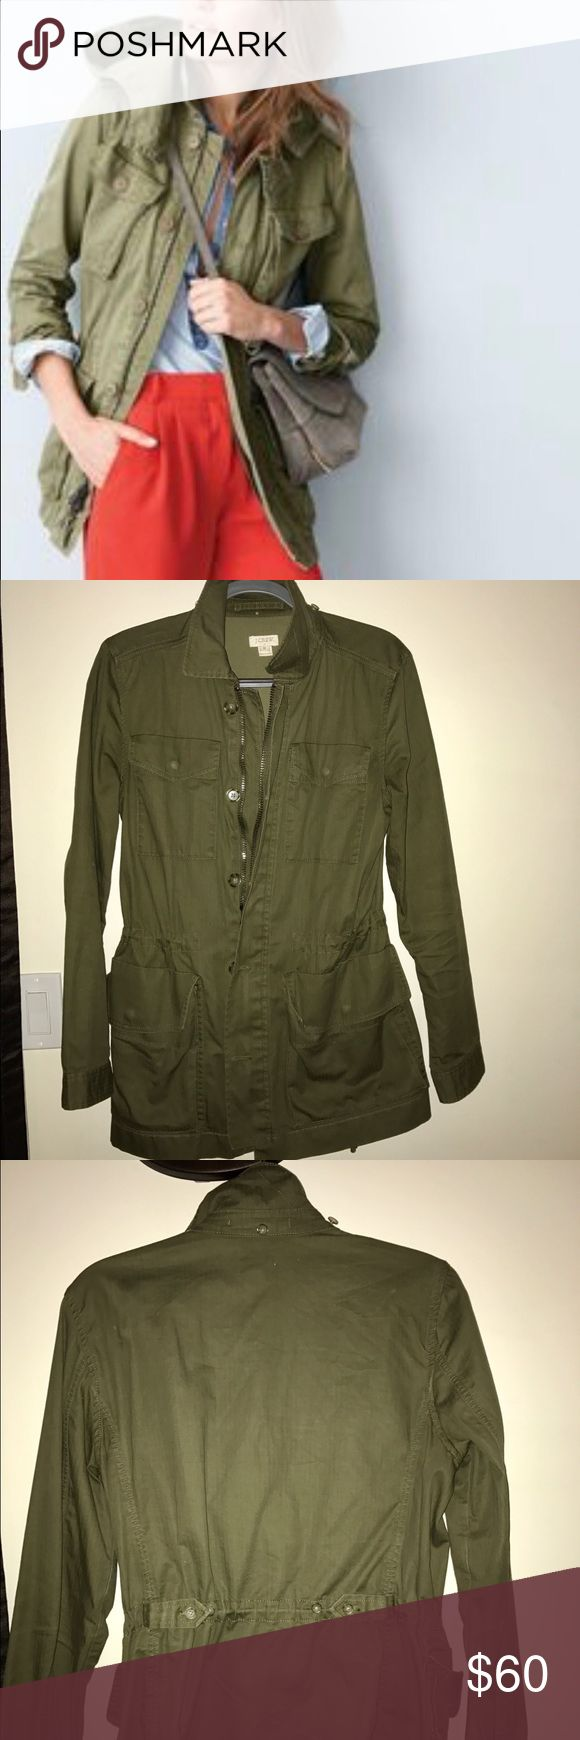 J Crew Utility/Military Jacket Olive green military jacket by JCrew, size M. Comes with detachable hood that you fasten at the collar. Drawstrings inside and buttons at back to cinch at the waist for a more tailored fit. 4 snap pockets on the front of the jacket. Full 2 way zip and buttons. Only worn a few times! Great piece for spring!! JCrew Jackets & Coats Utility Jackets